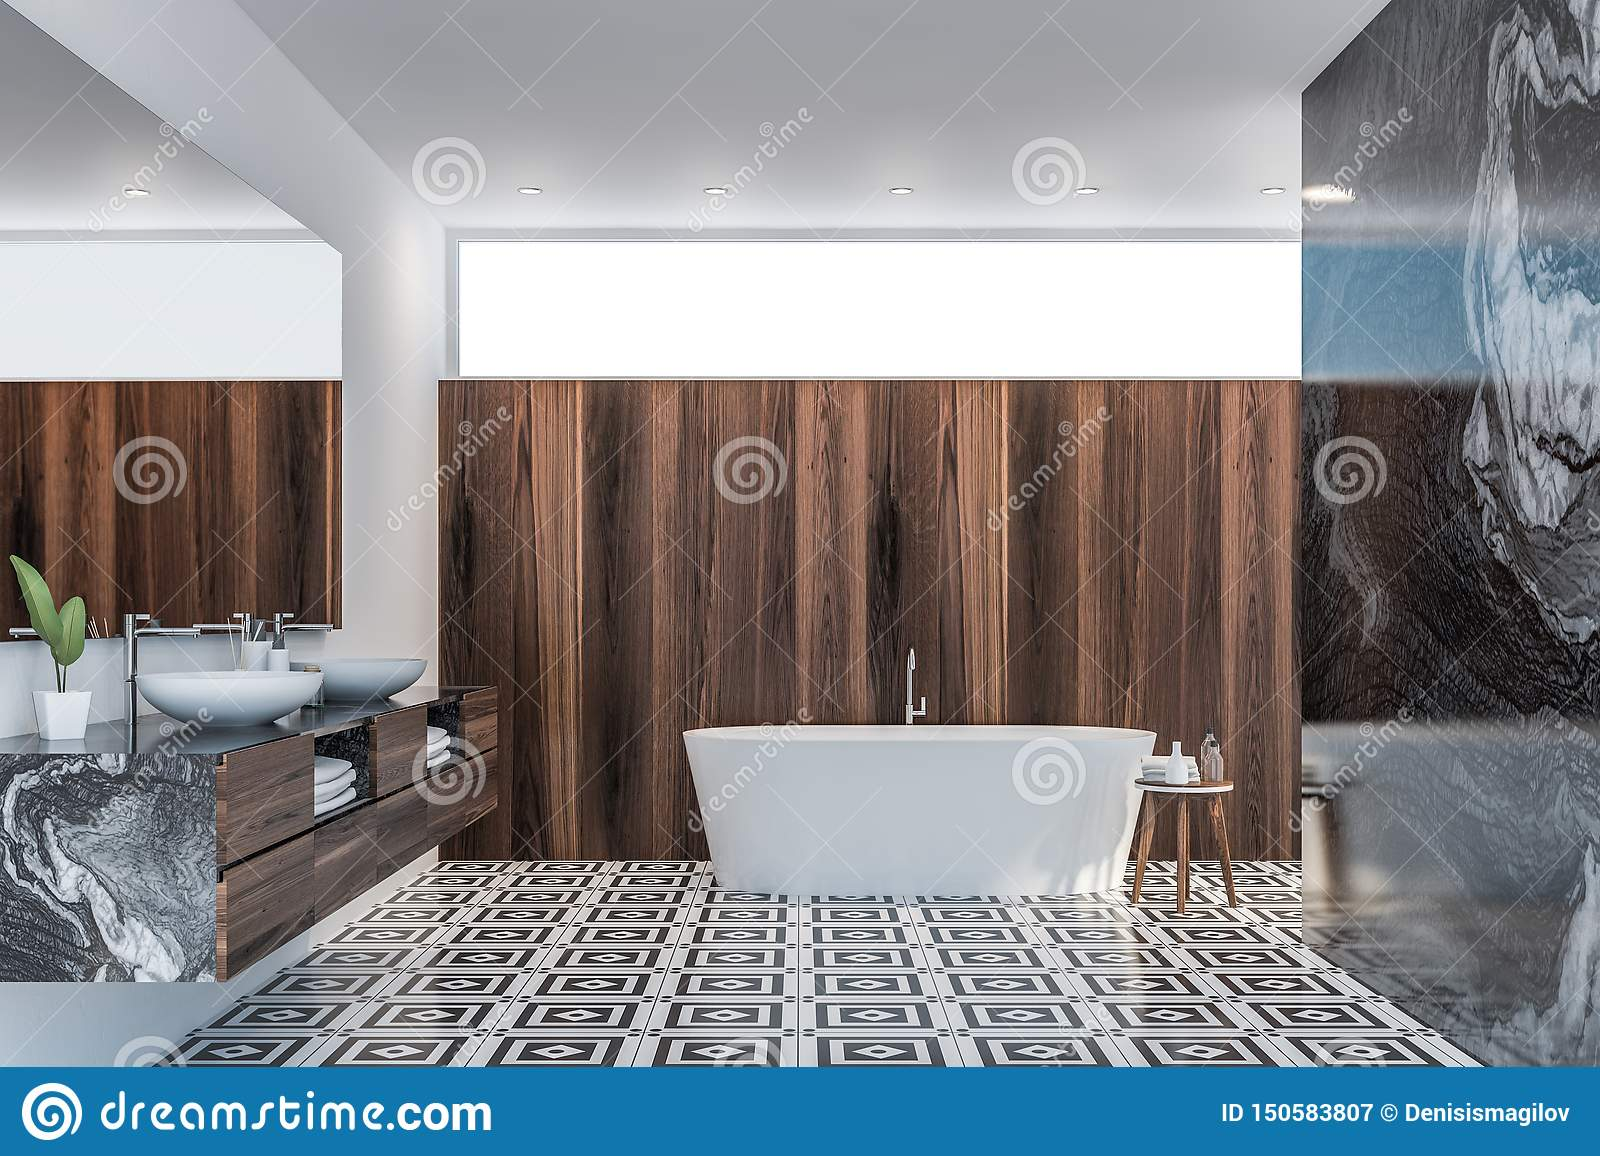 Dark Wood And Marble Bathroom Interior Stock Illustration Illustration Of Fancy Construction 150583807